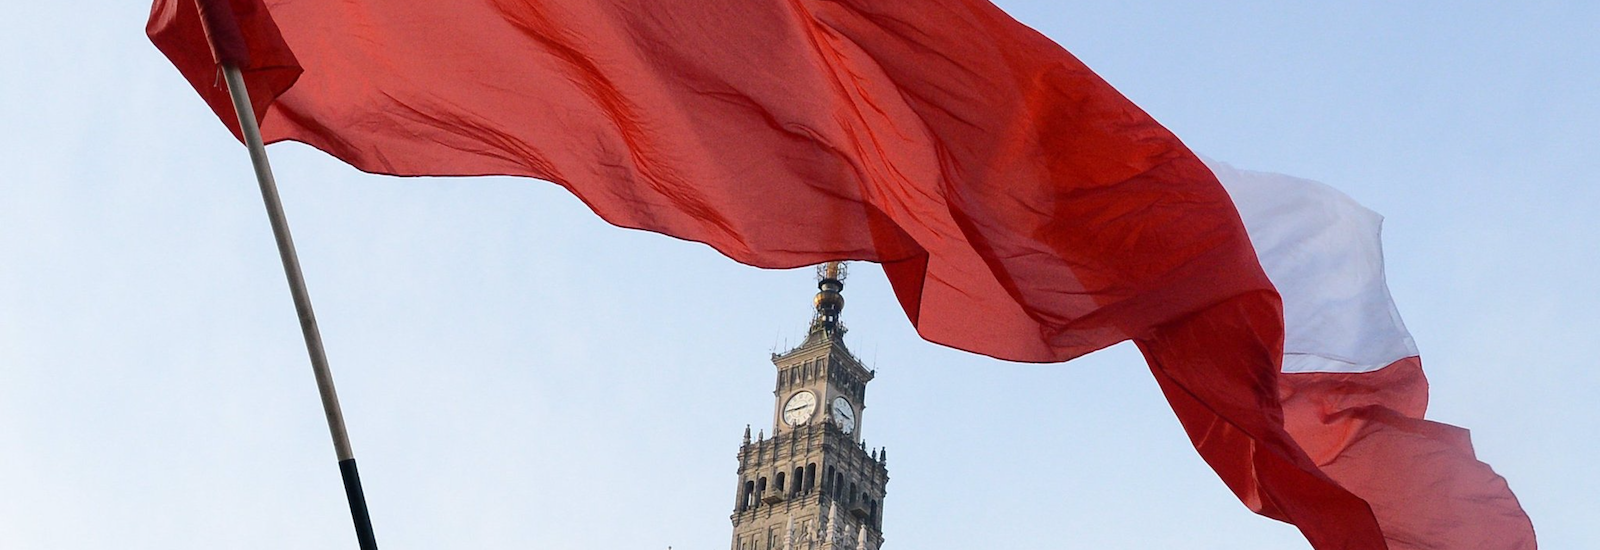 poland expats foreigners in poland flag